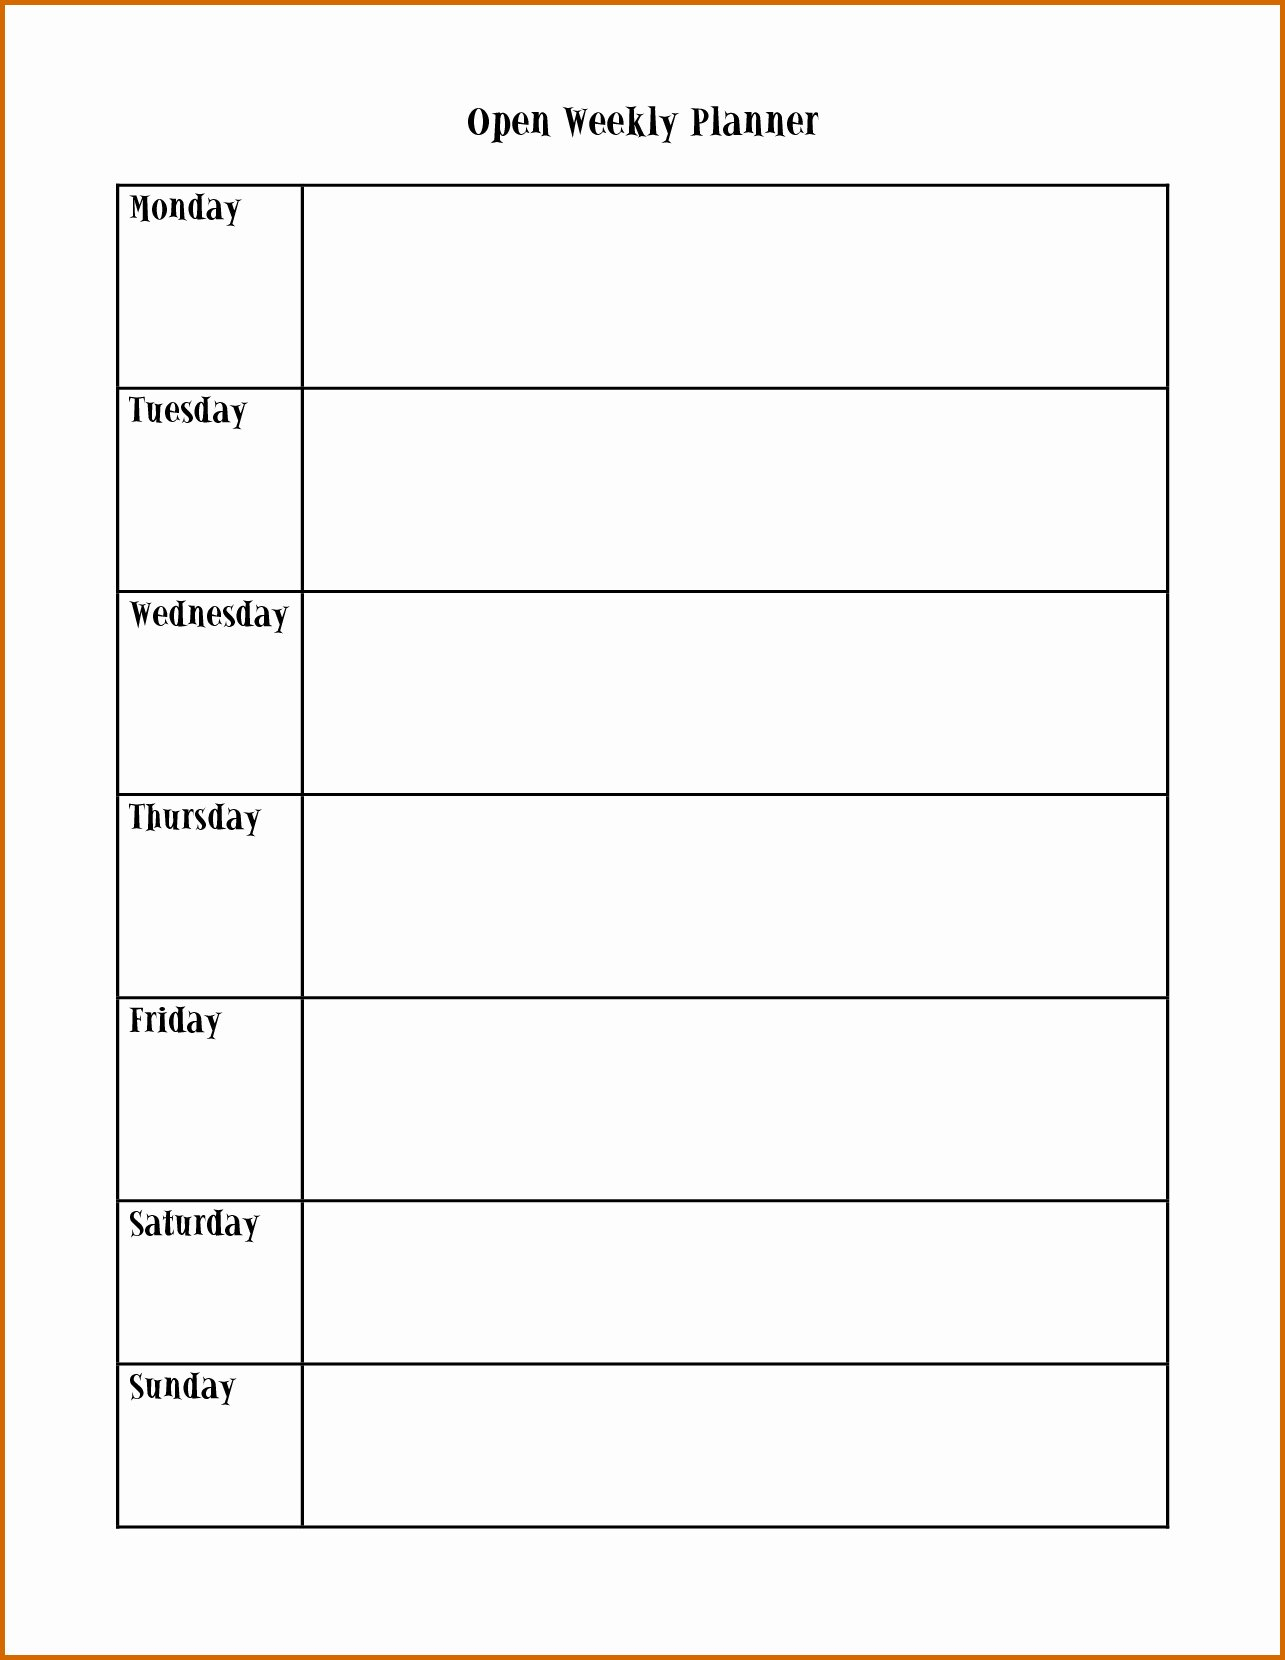 Image Result For Blank Calendar Page Monday Through Sunday Sunday Through Saturday Template